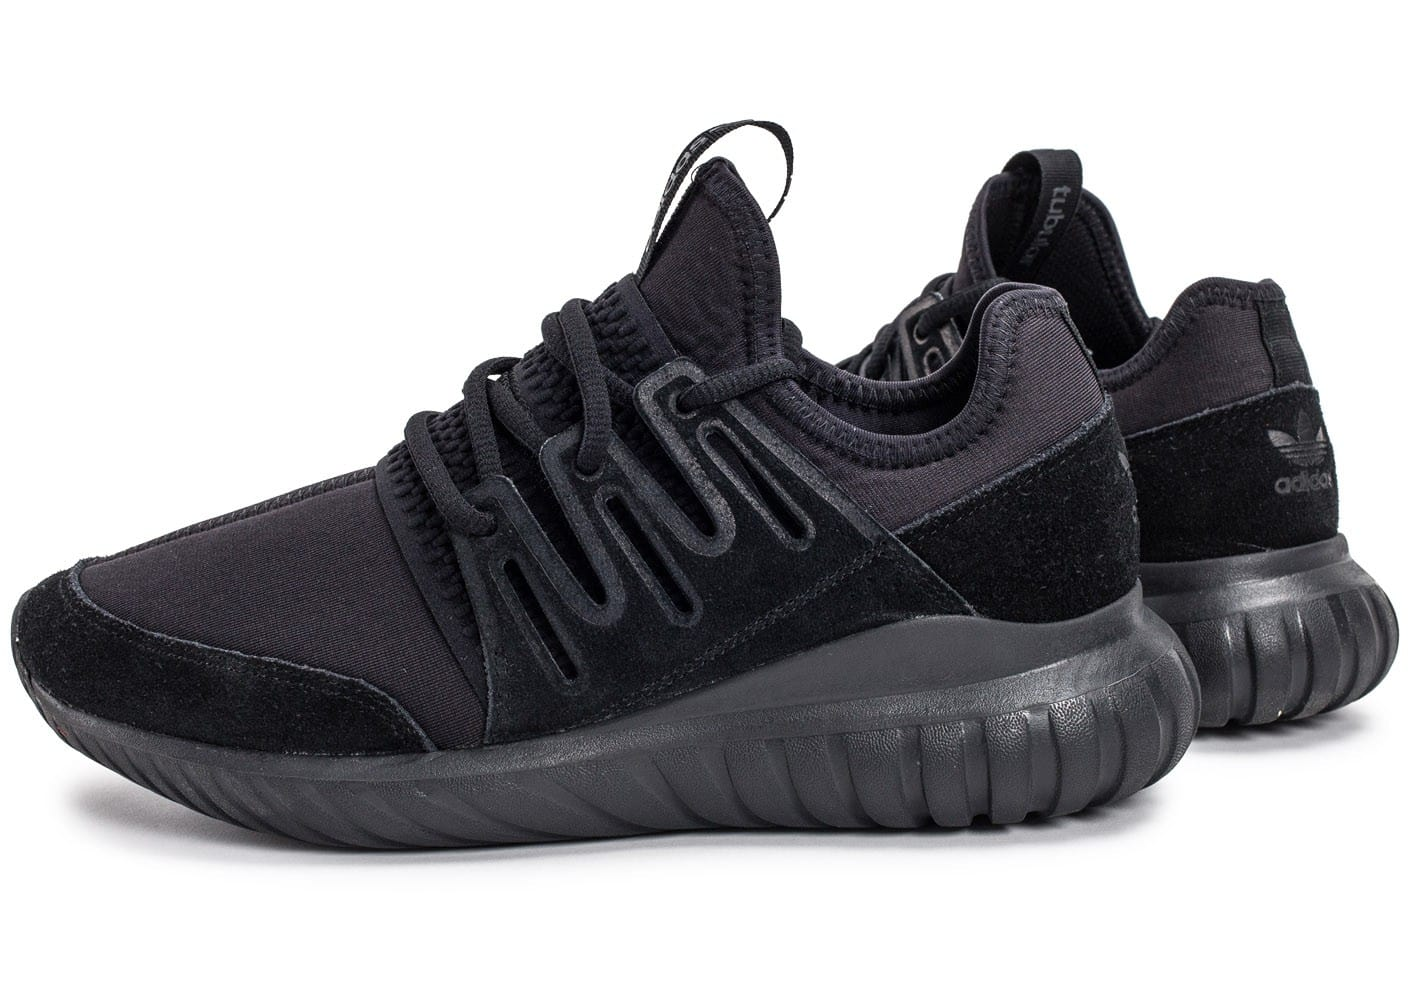 adidas Tubular Radial noire Chaussures Baskets homme